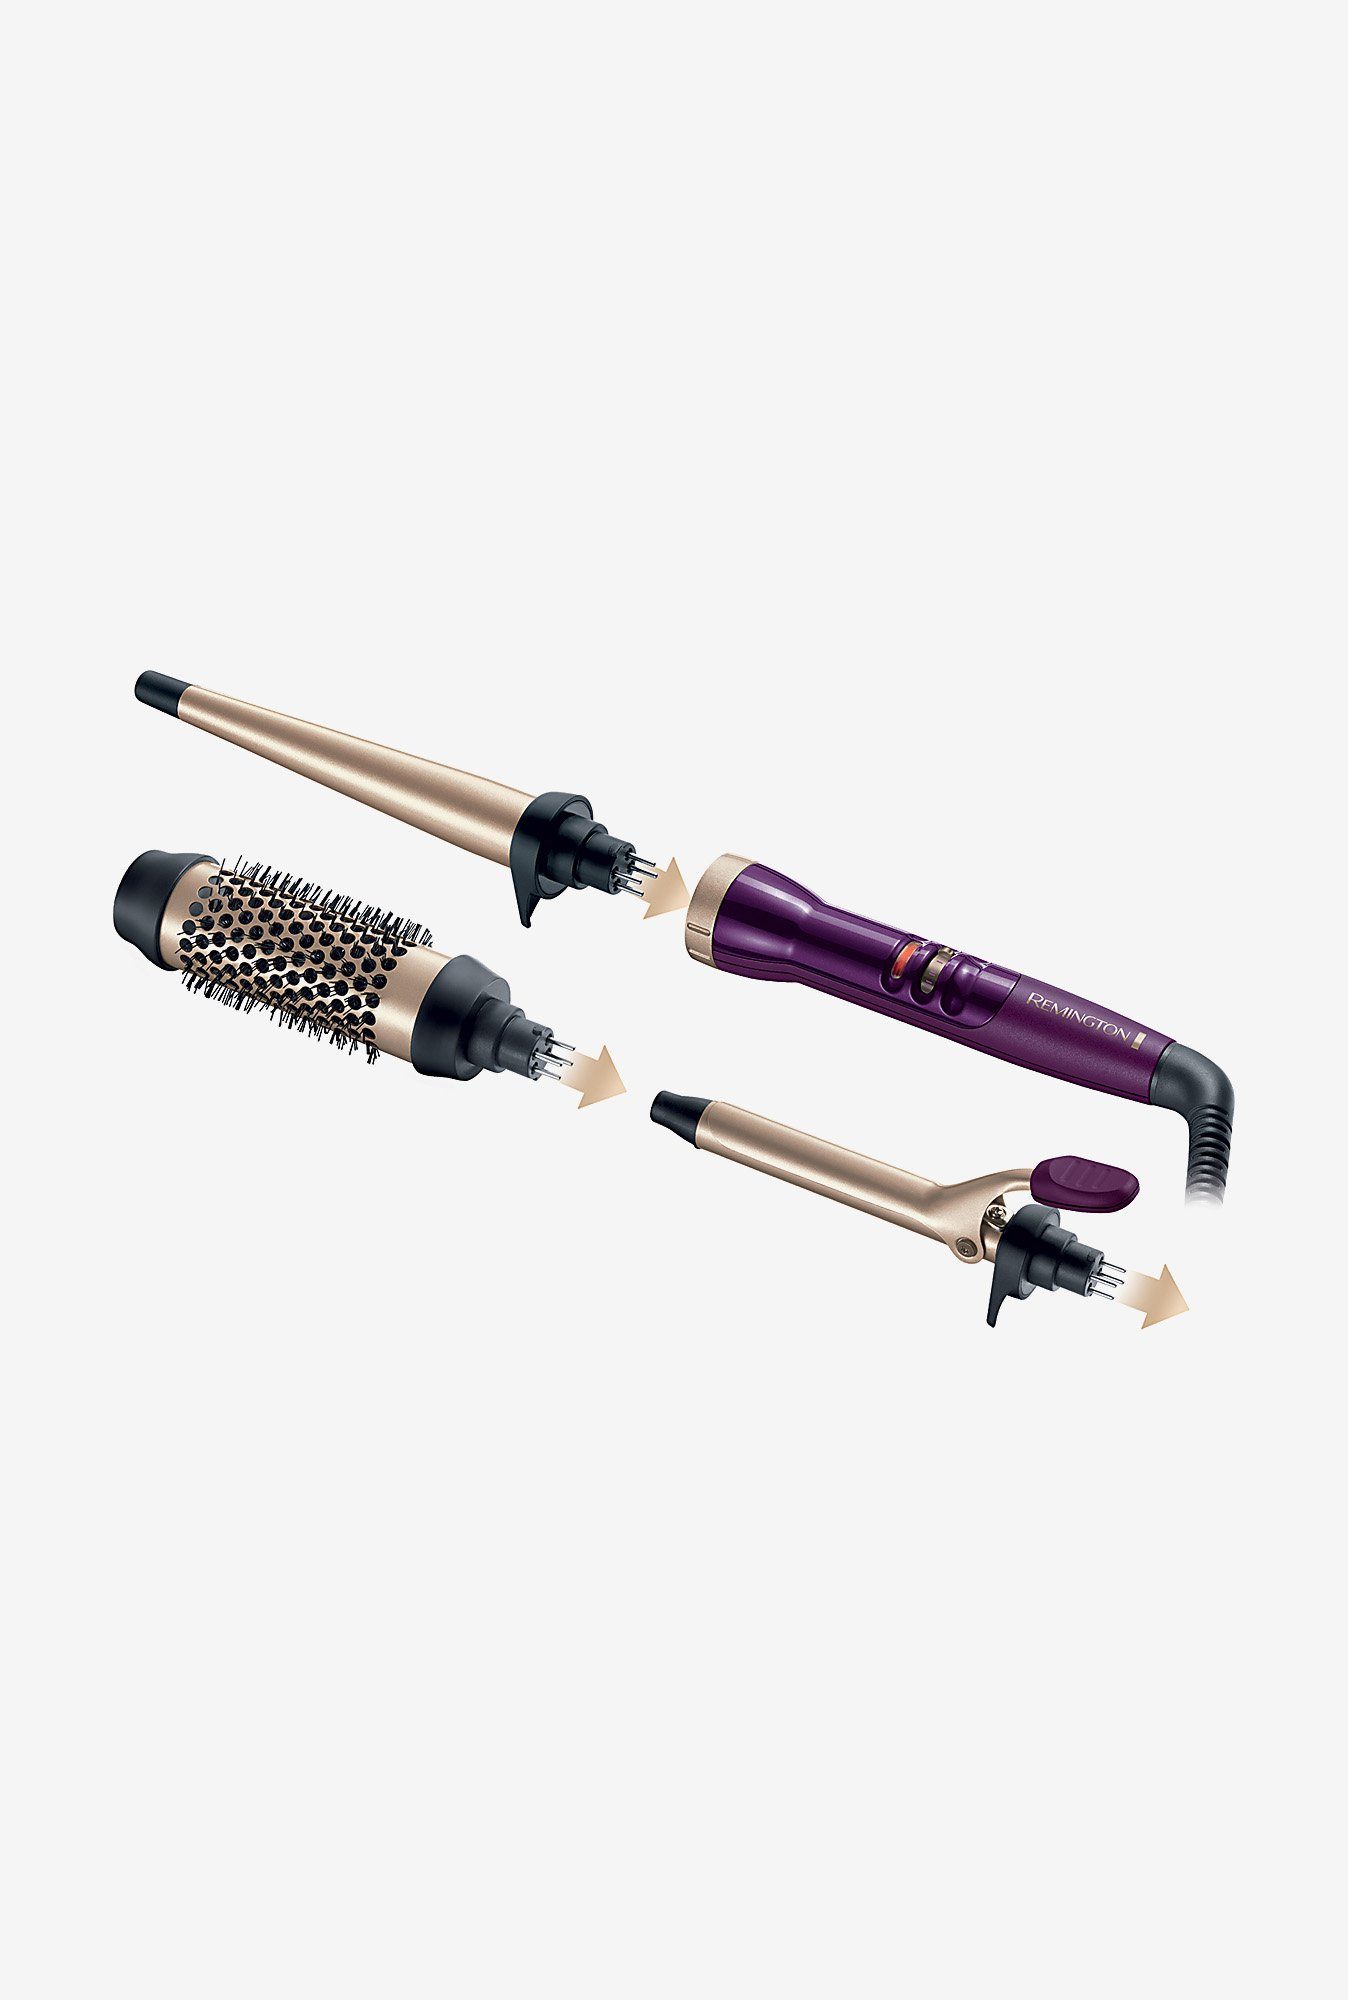 Remington CI97M1 Your Style Styler Kit (Purple)